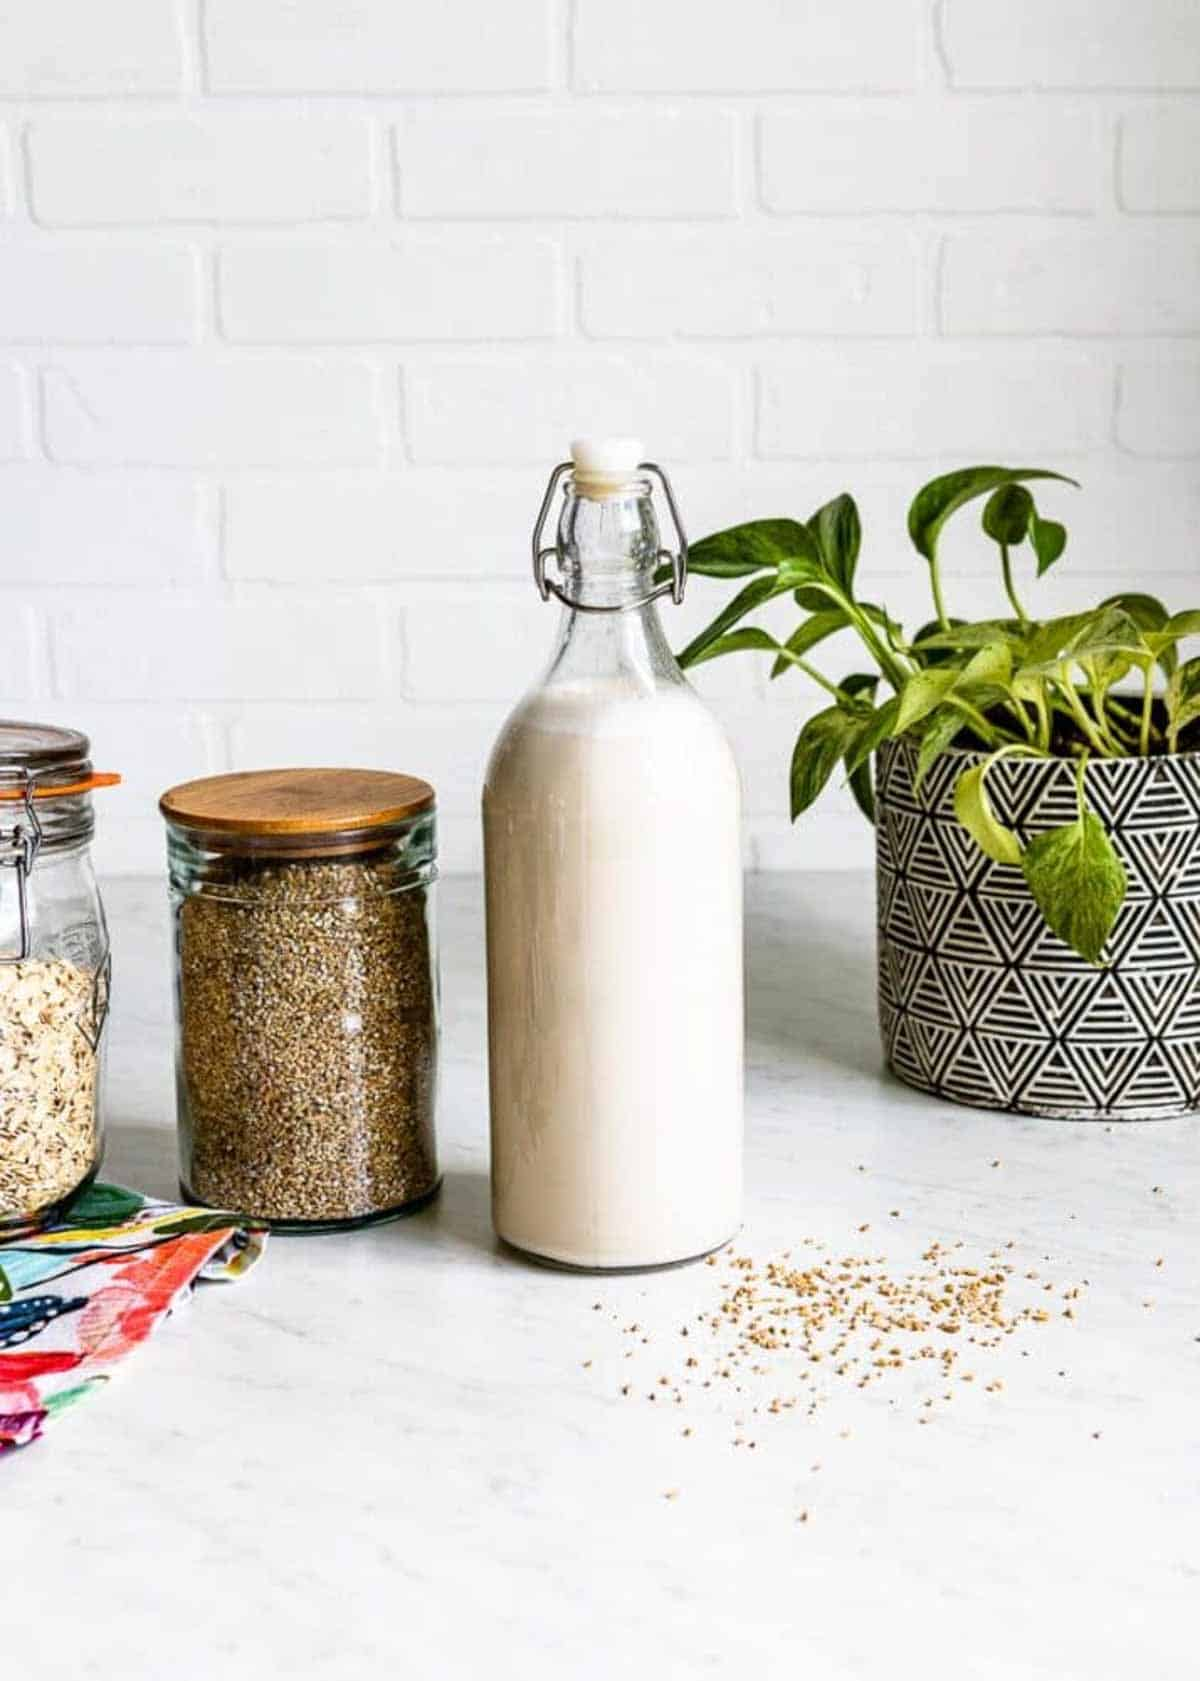 homemade plant milk